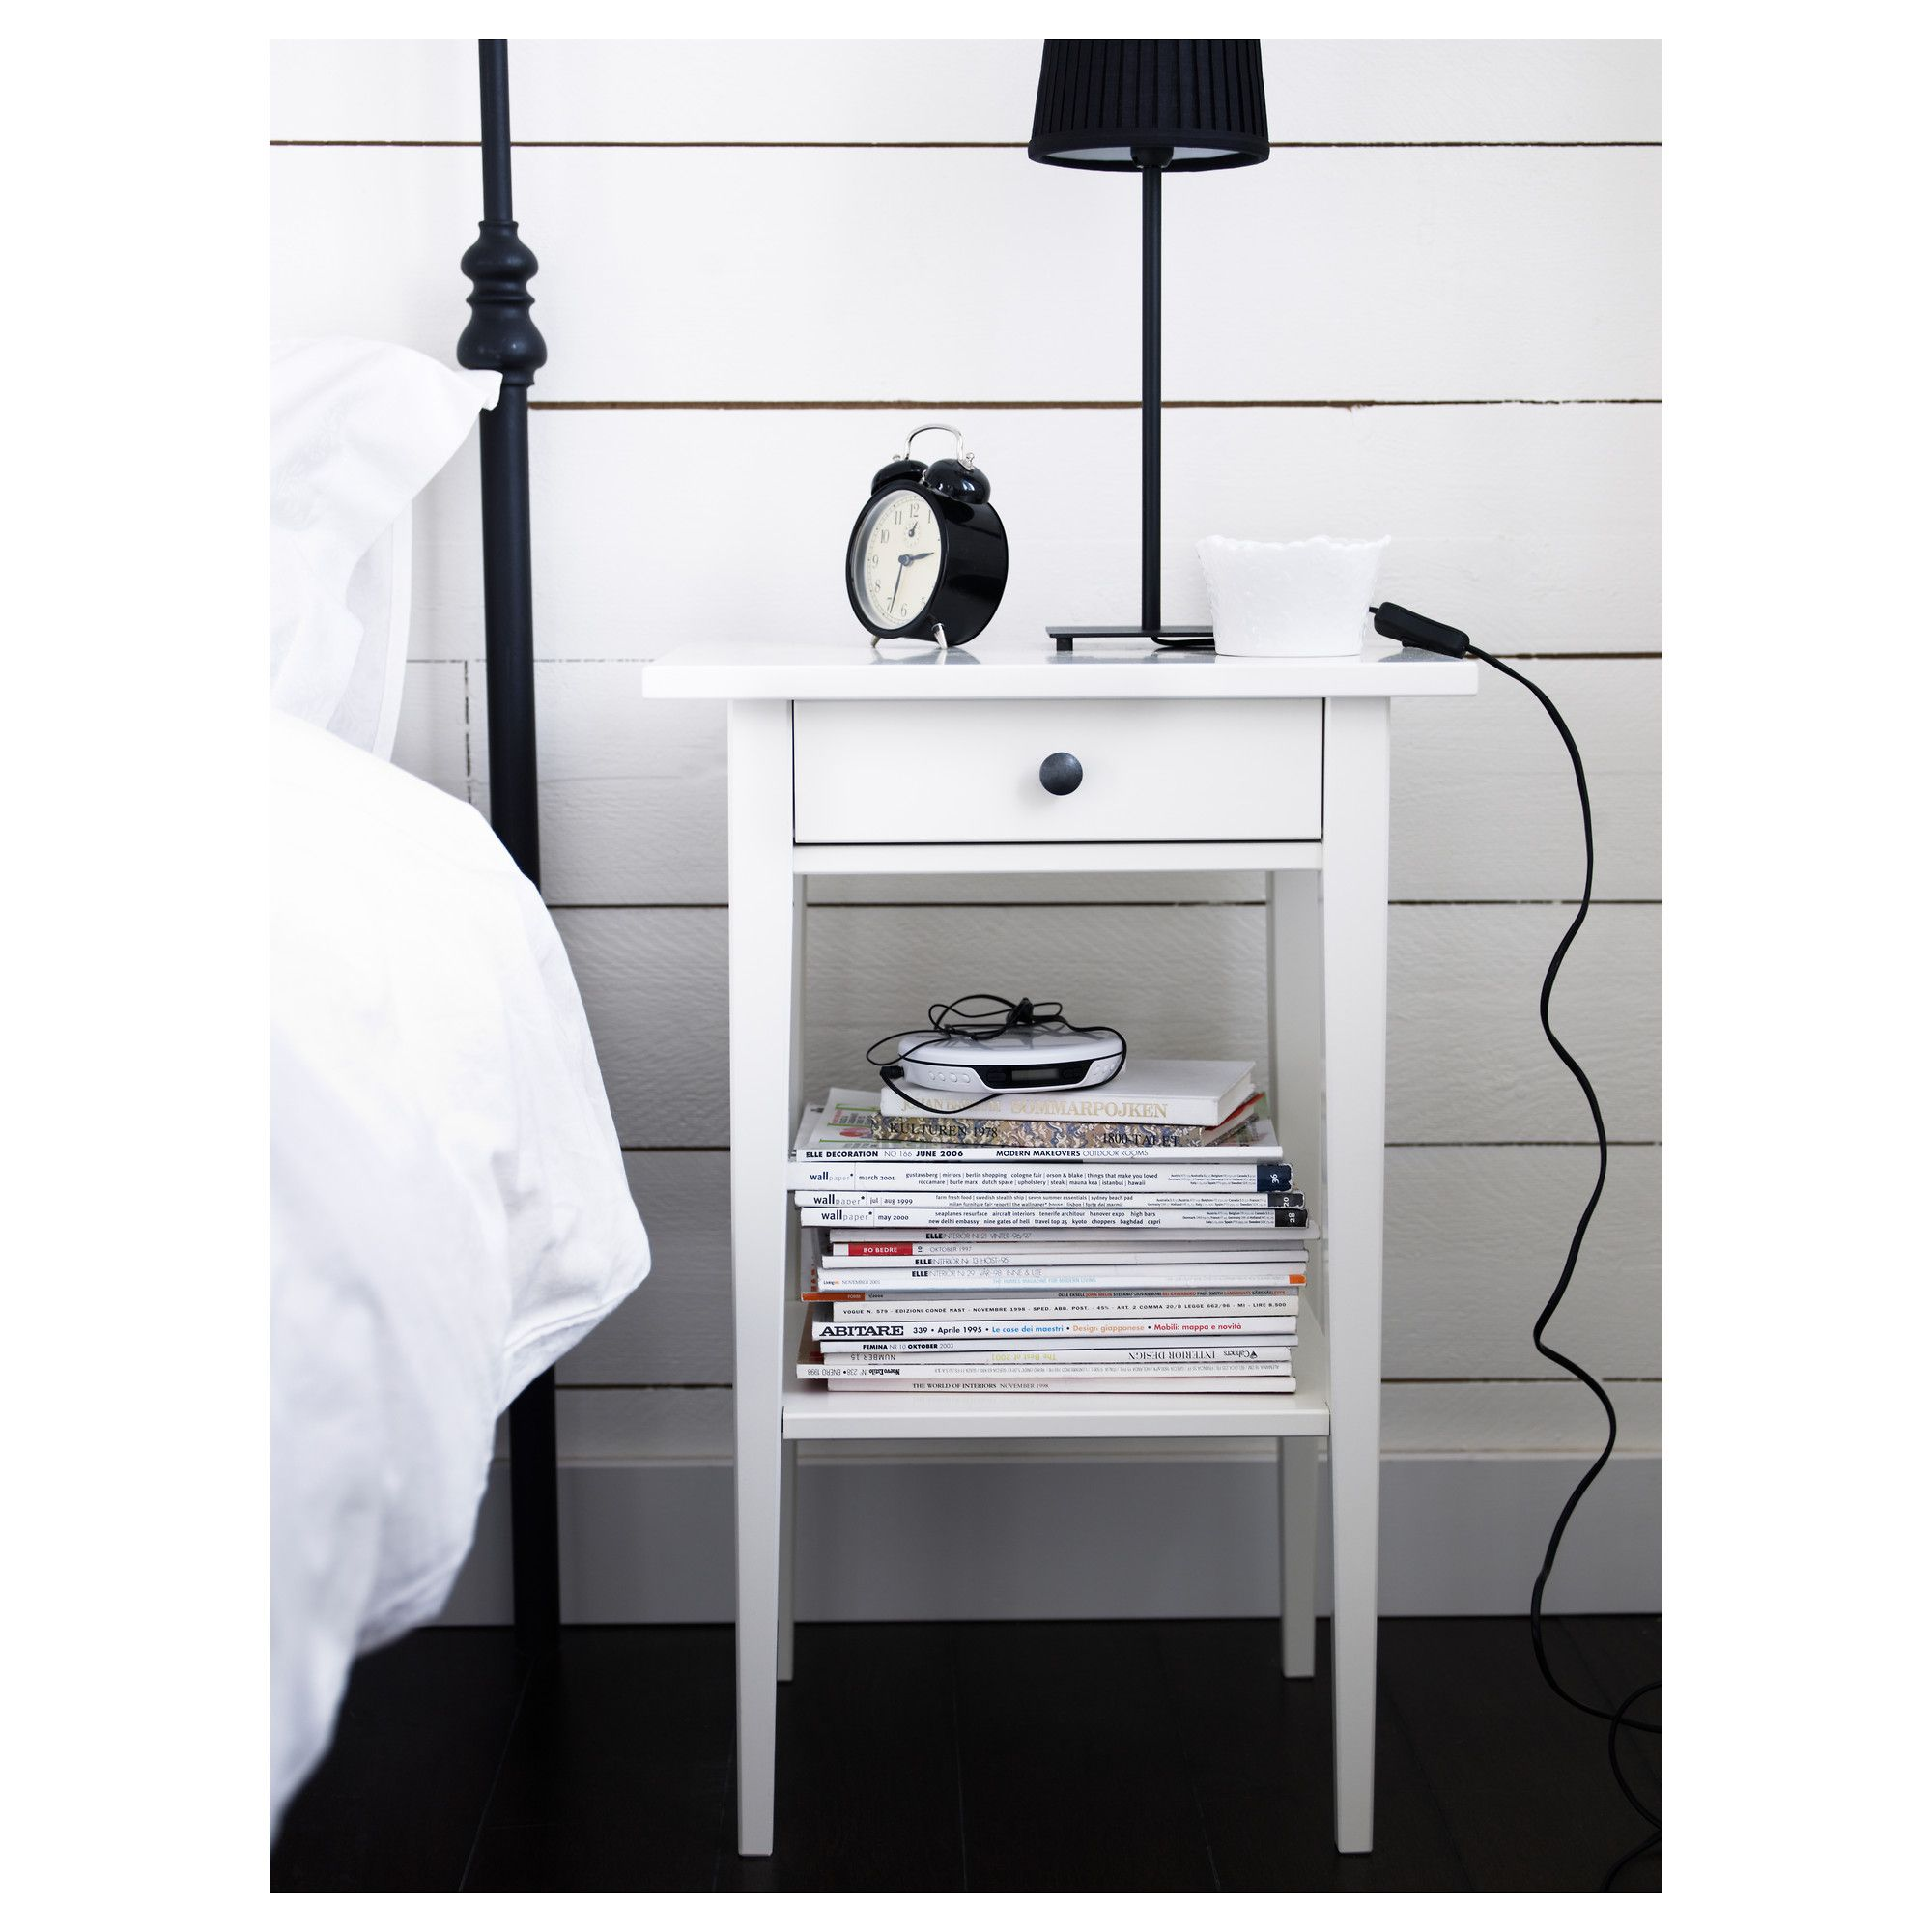 Hemnes ikea simple bedside table with drawer choice of hemnes ikea simple bedside table with drawer choice of 2 finishes white1 showing wood grain 4999 1 white lacquered finish 5999 euro watchthetrailerfo